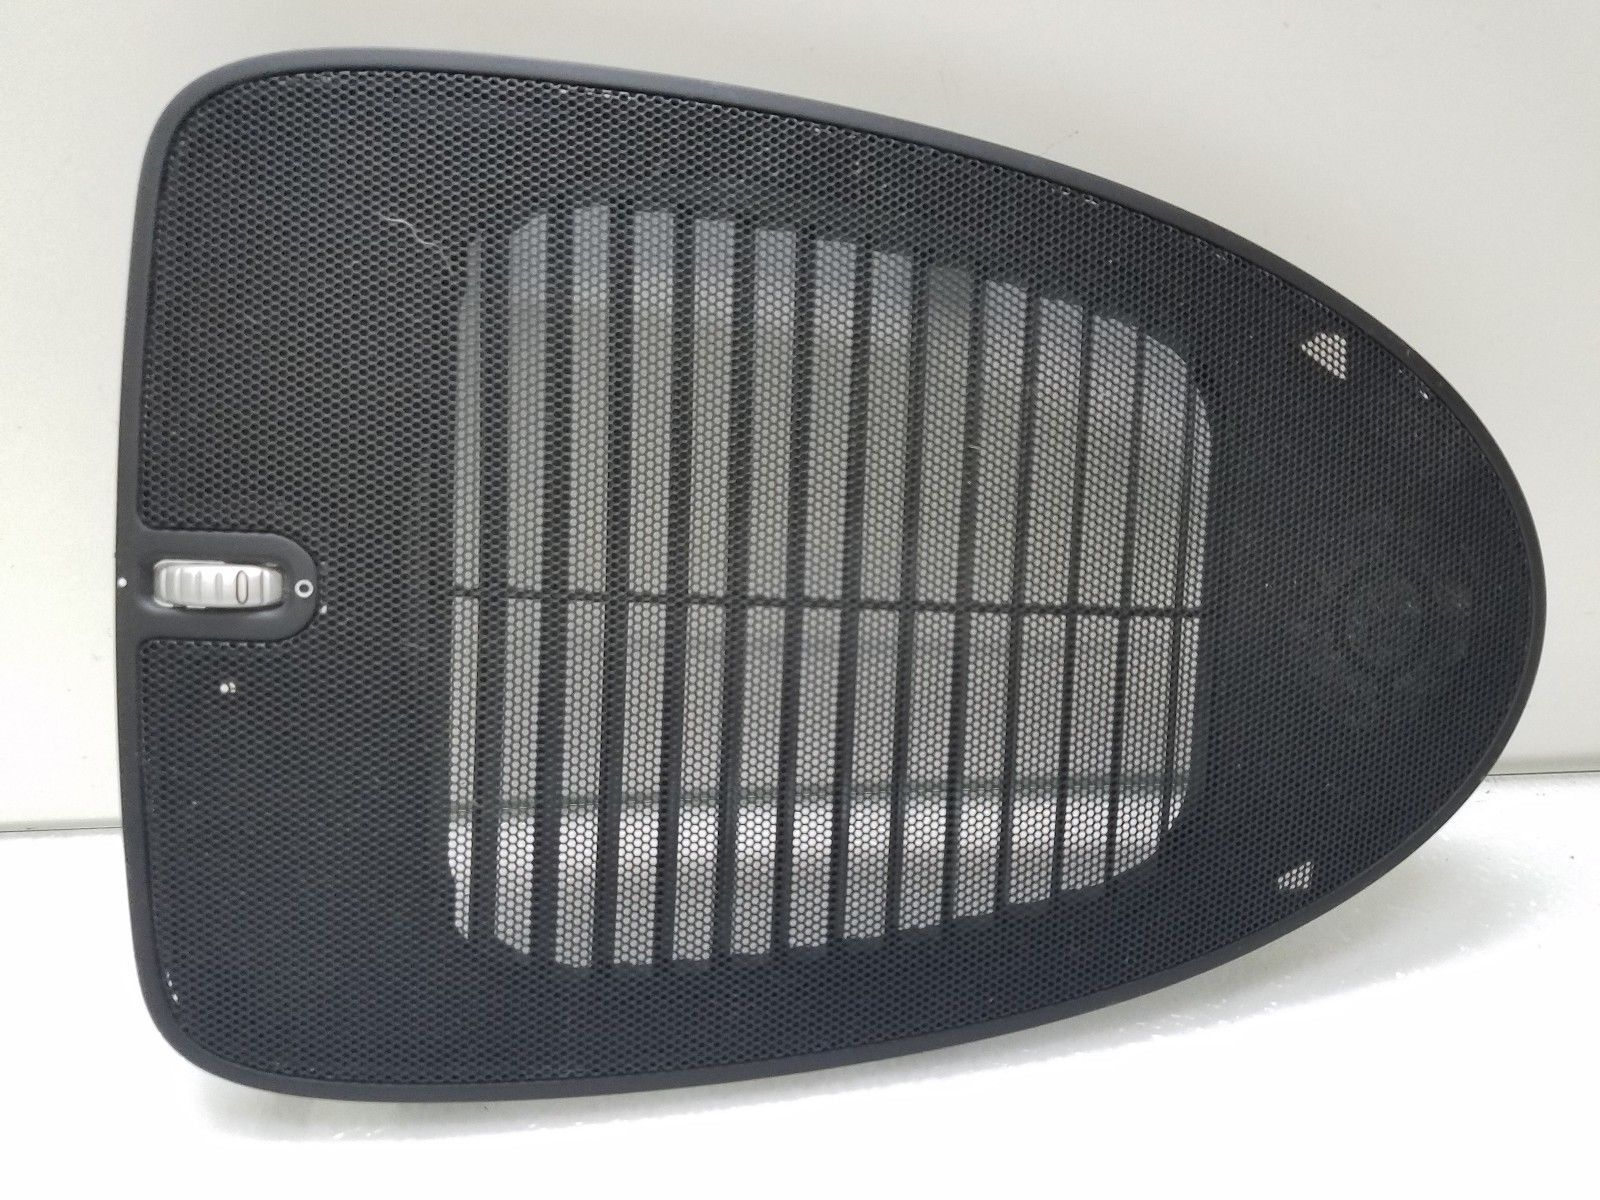 2003-2010 PORSCHE CAYENNE DASH CENTER AIR VENT SPEAKER GRILLE BLACK 7L5858189 Does not apply